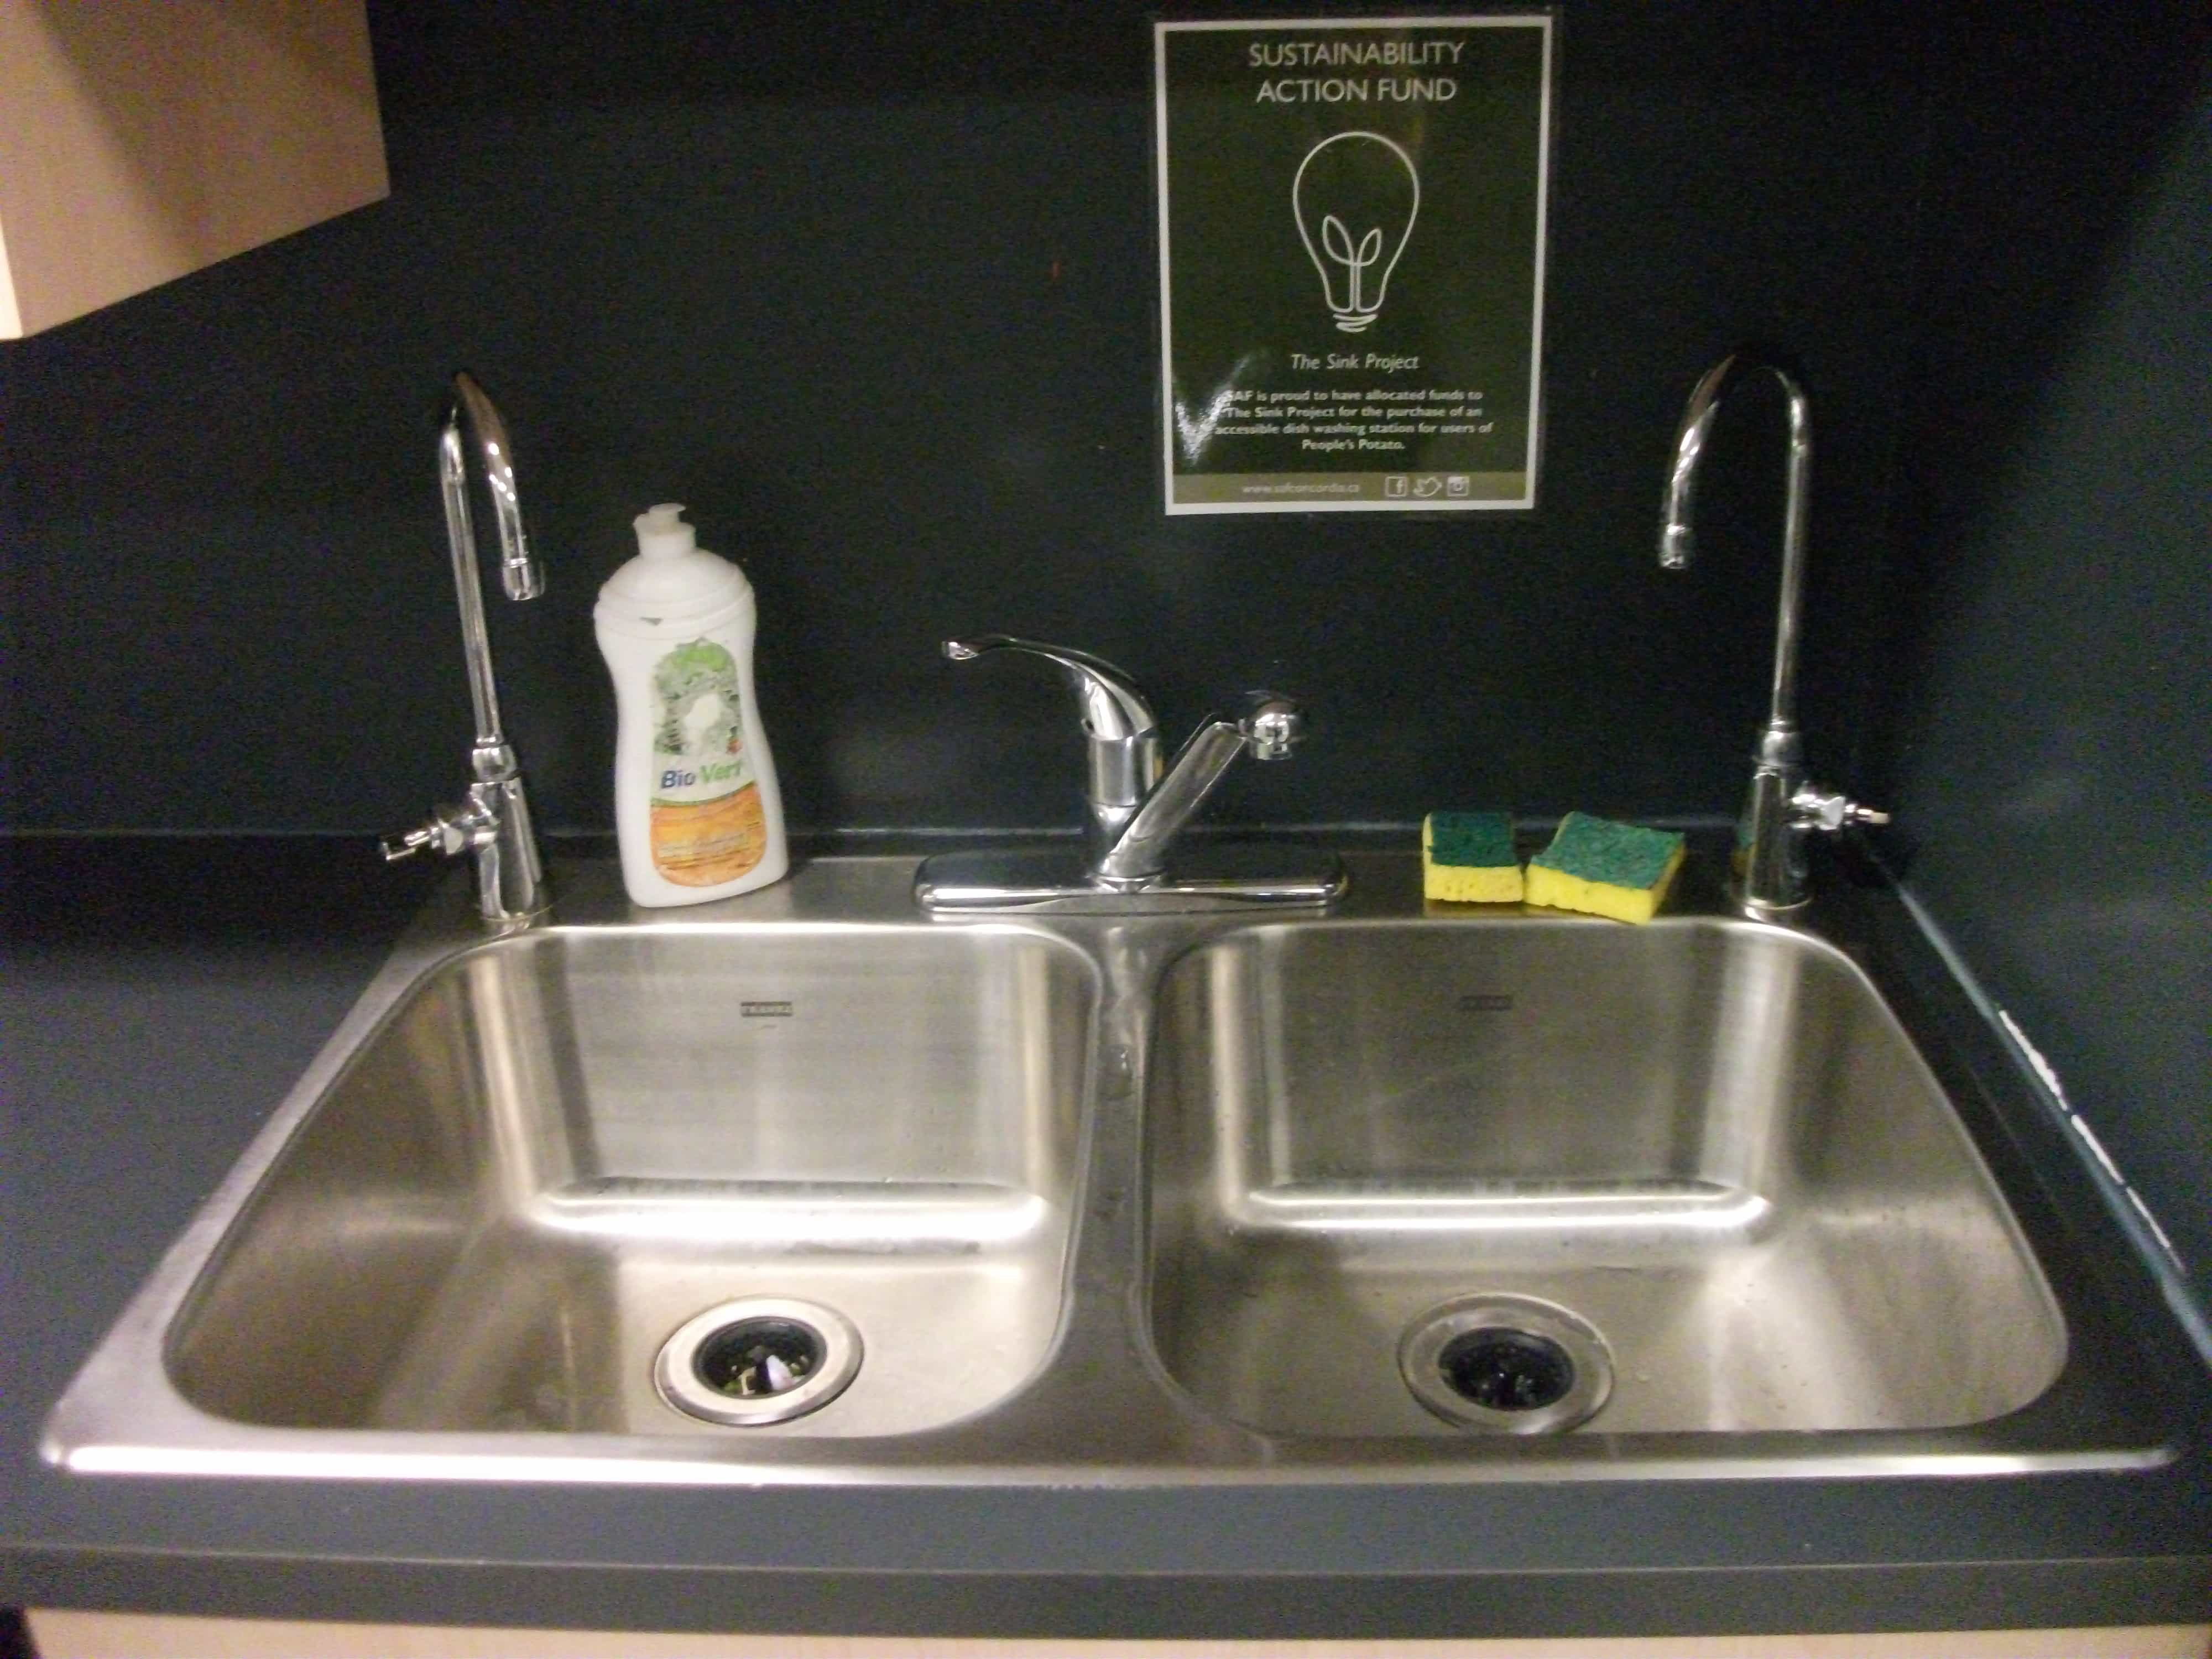 People's Potato Sink Project